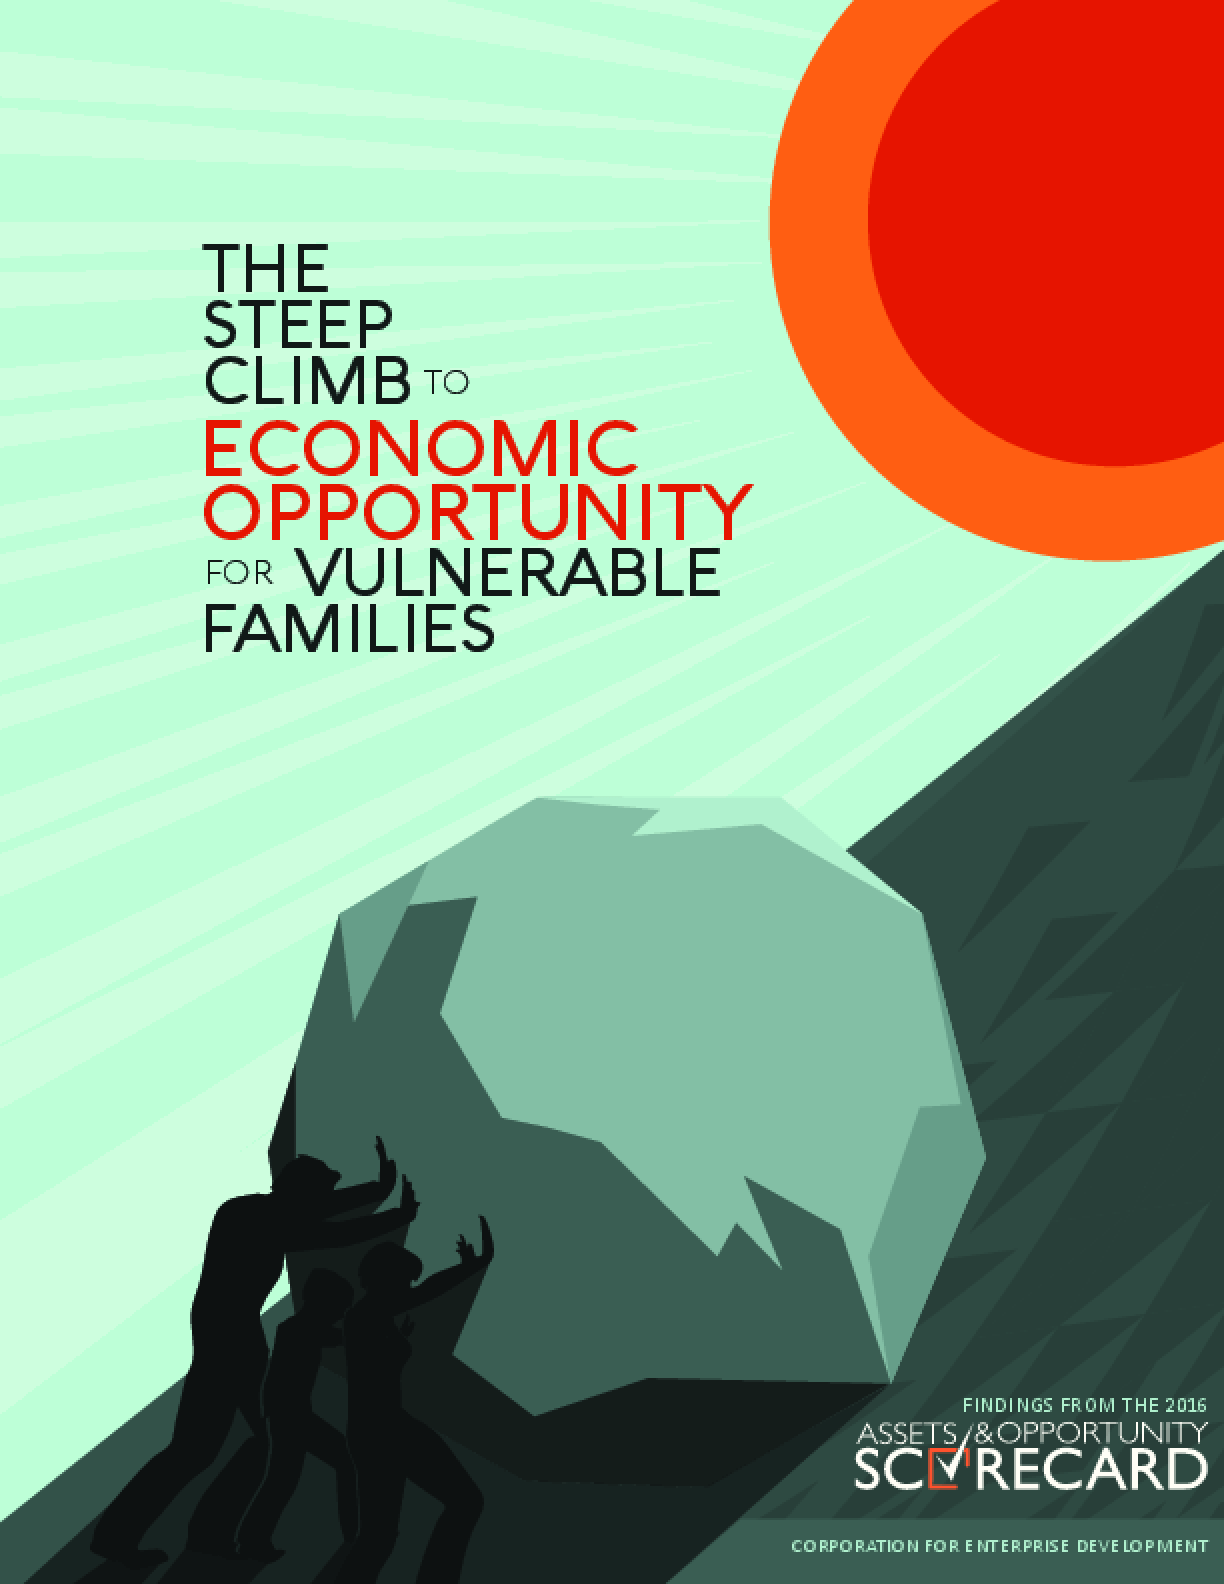 The 2016 Assets and Opportunity Scorecard: The Steep Climb to Economic Opportunity for Vulnerable Families